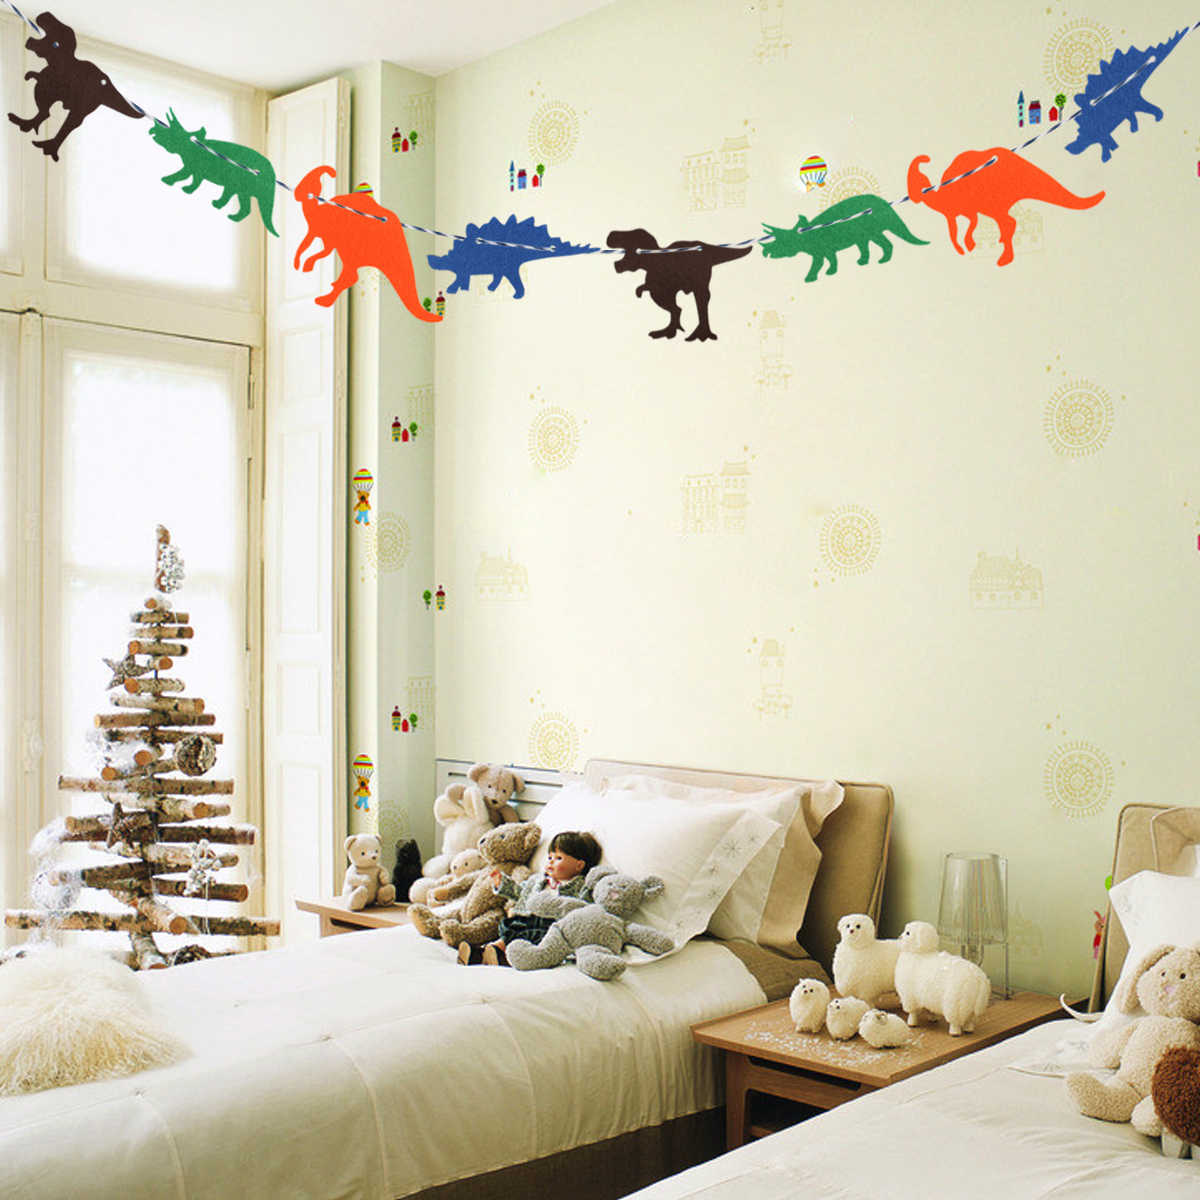 Non-Woven Dinosaur Hanging Flag Dinosaur Happy Birthday Garland Banner Baby Shower Birthday party Room Decoration Supplies